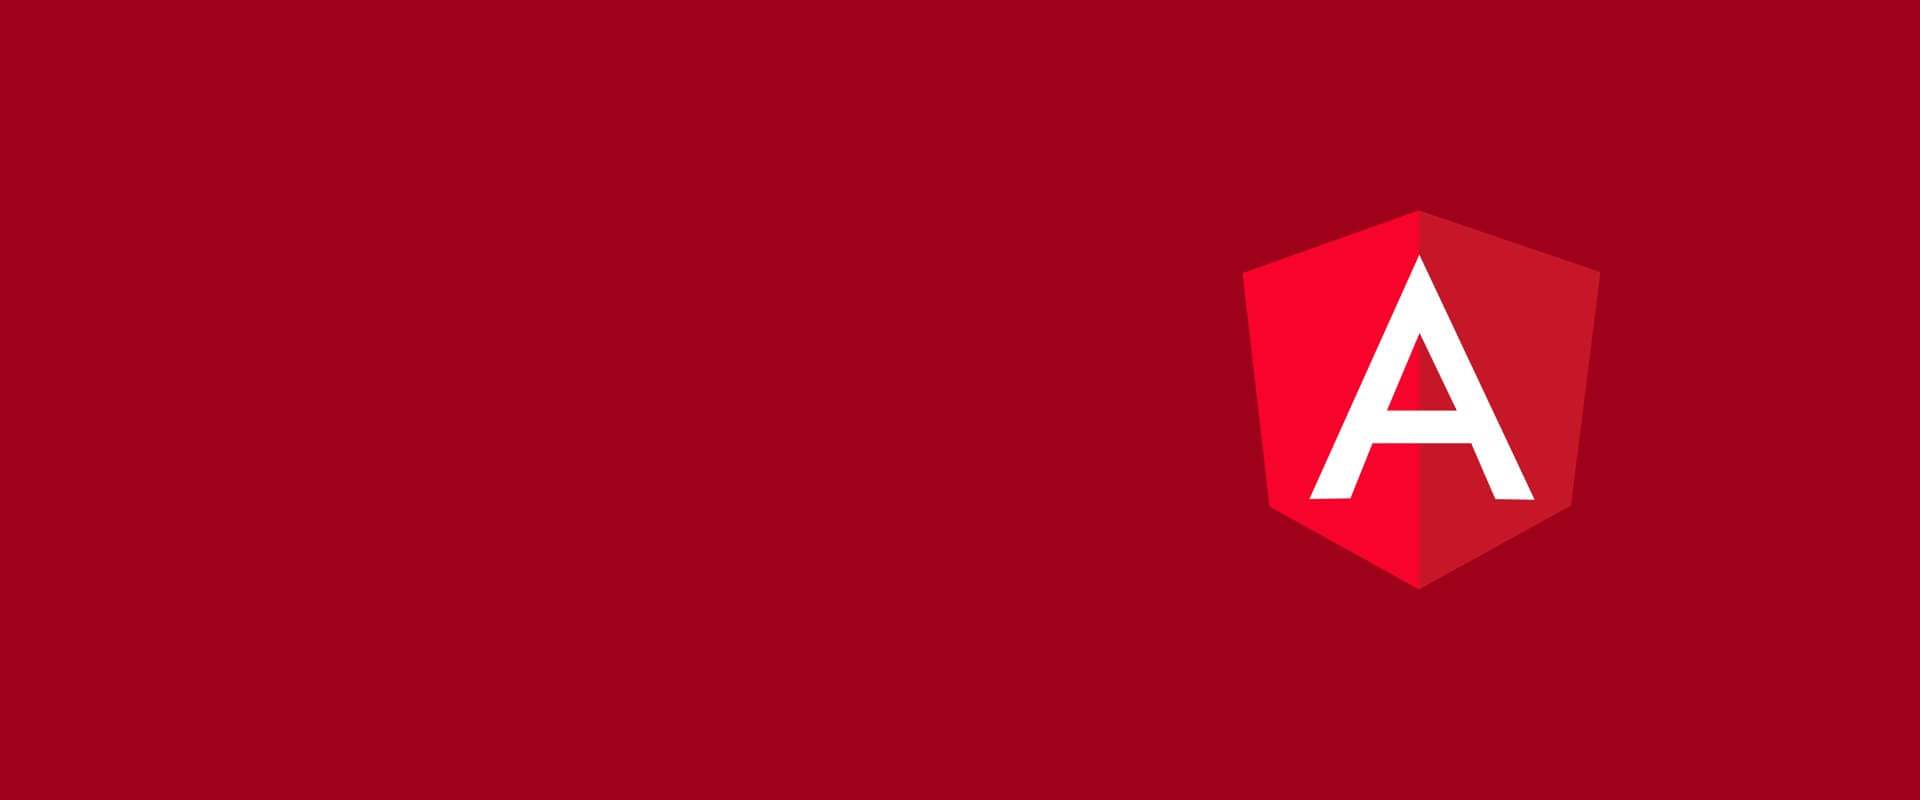 Hire AngularJS Developers for your web application